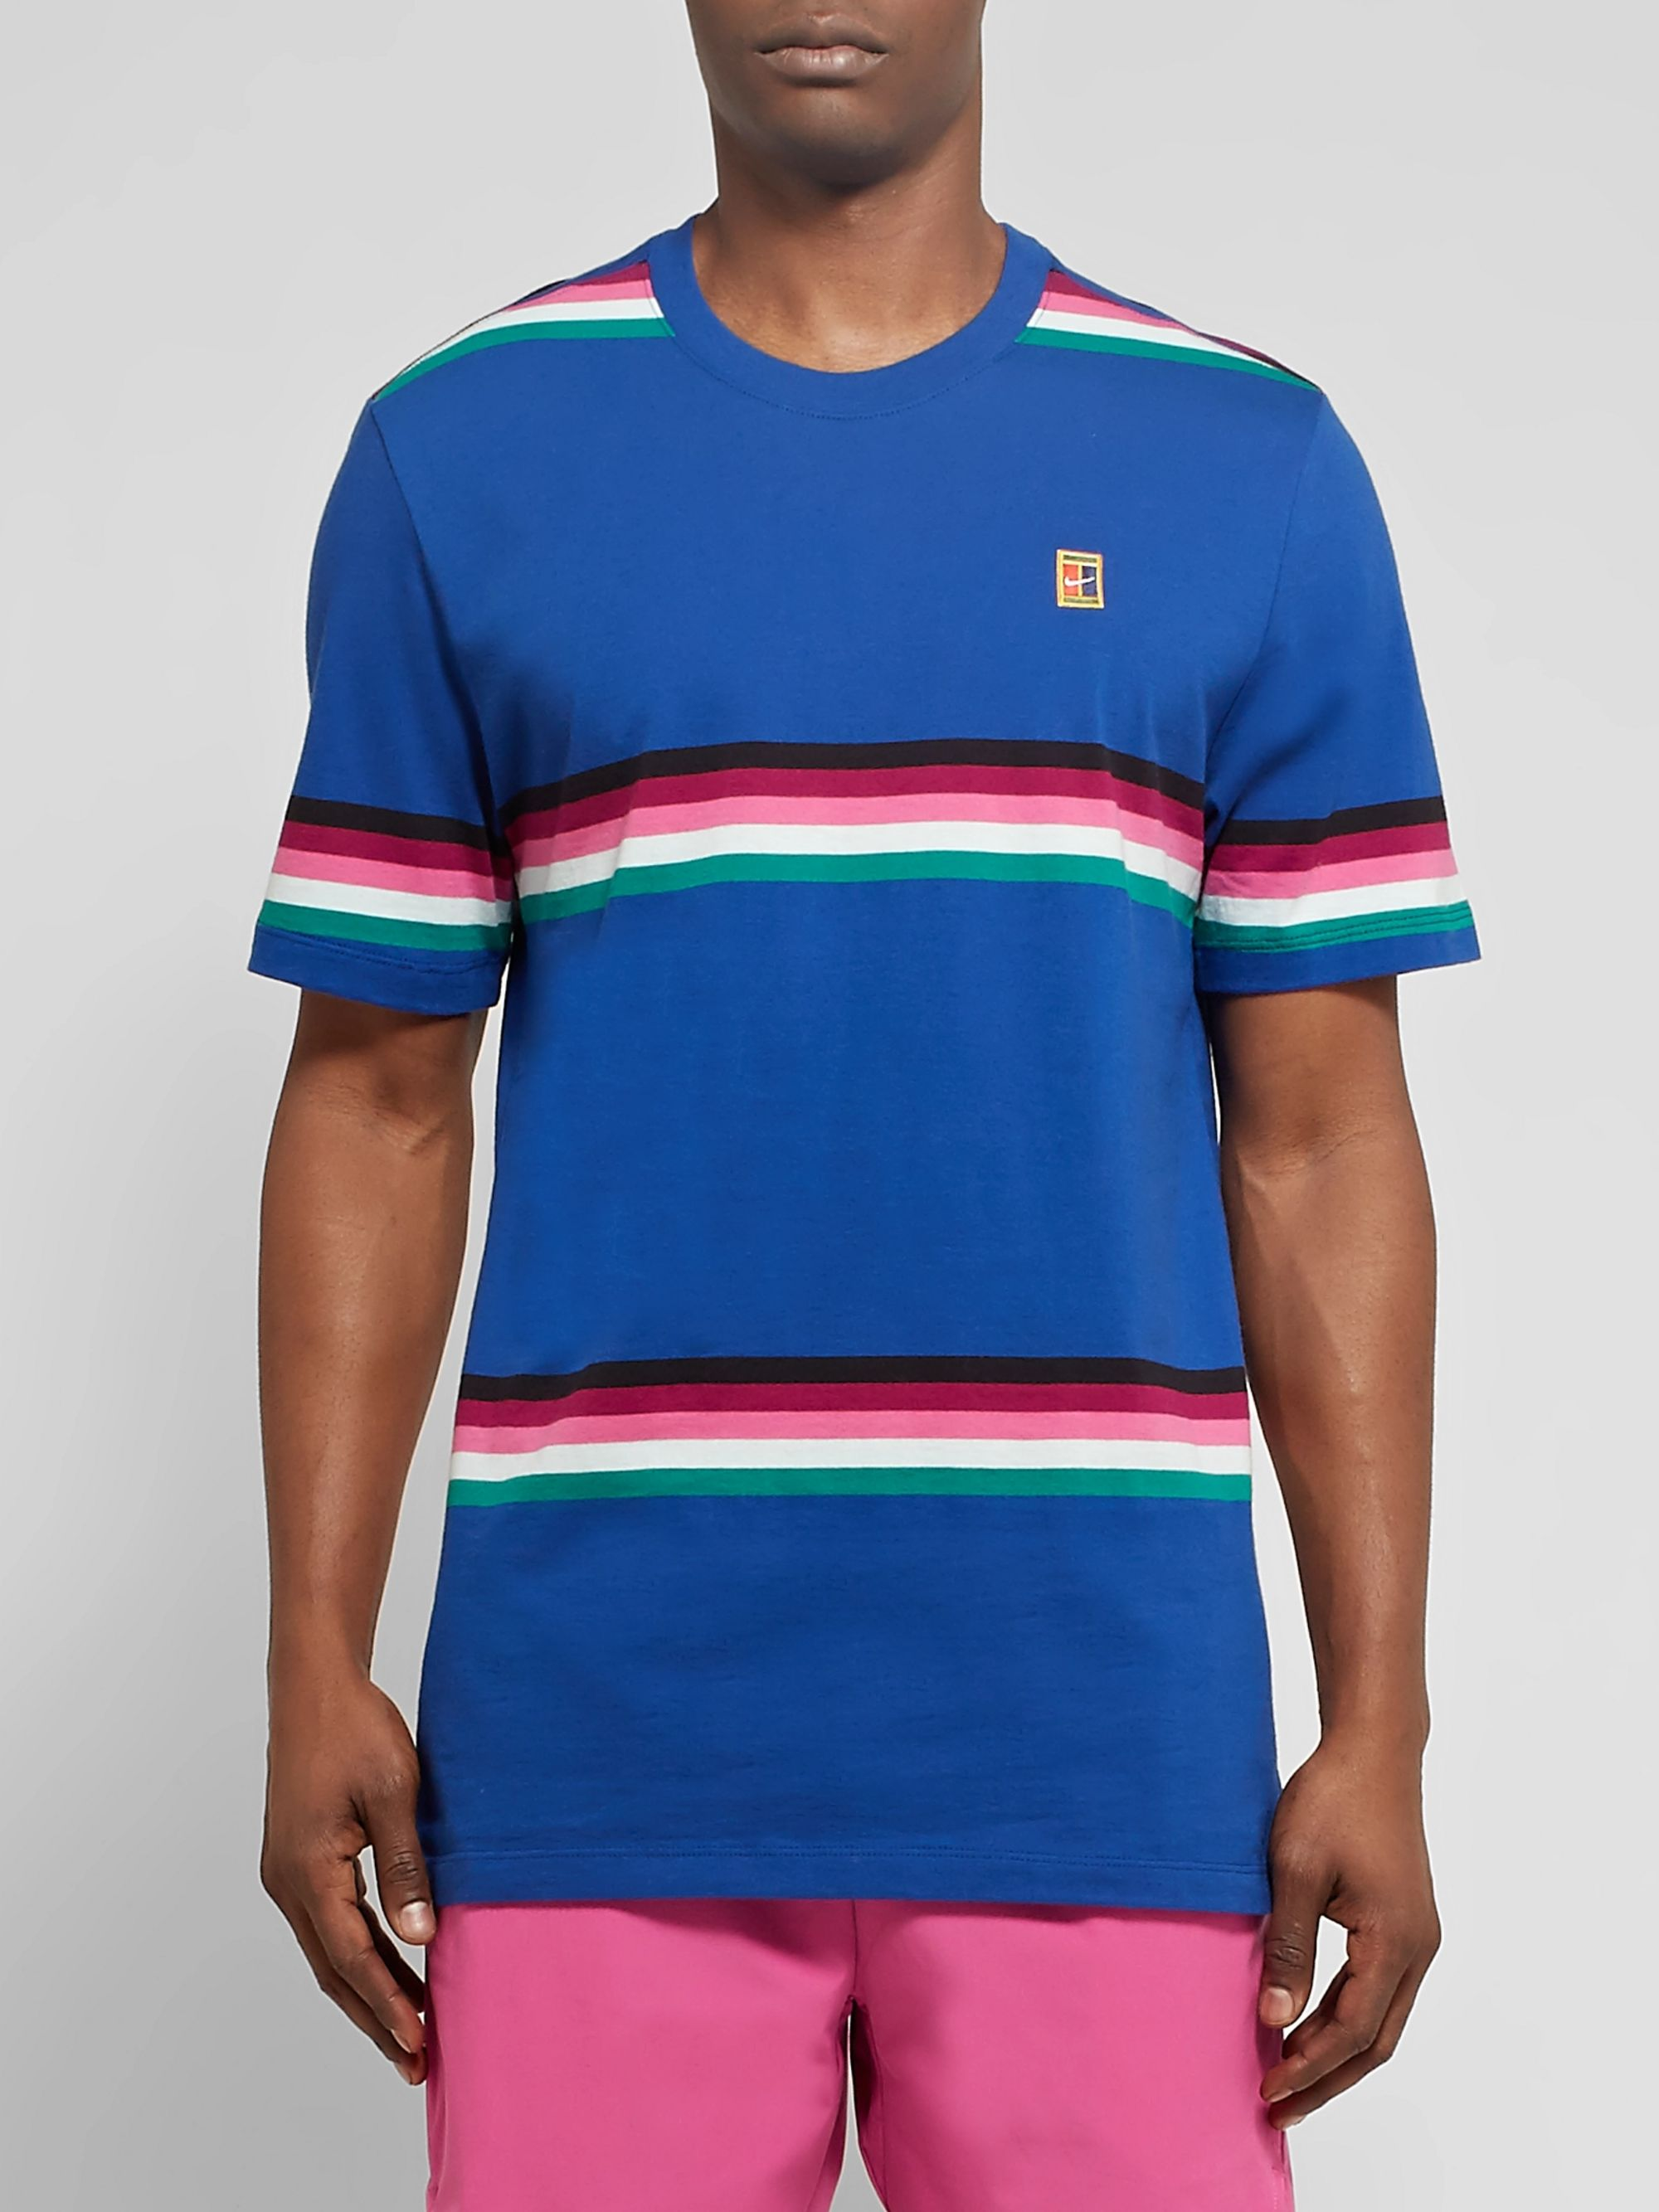 Nike Tennis NikeCourt Striped Cotton-Jersey Tennis T-Shirt